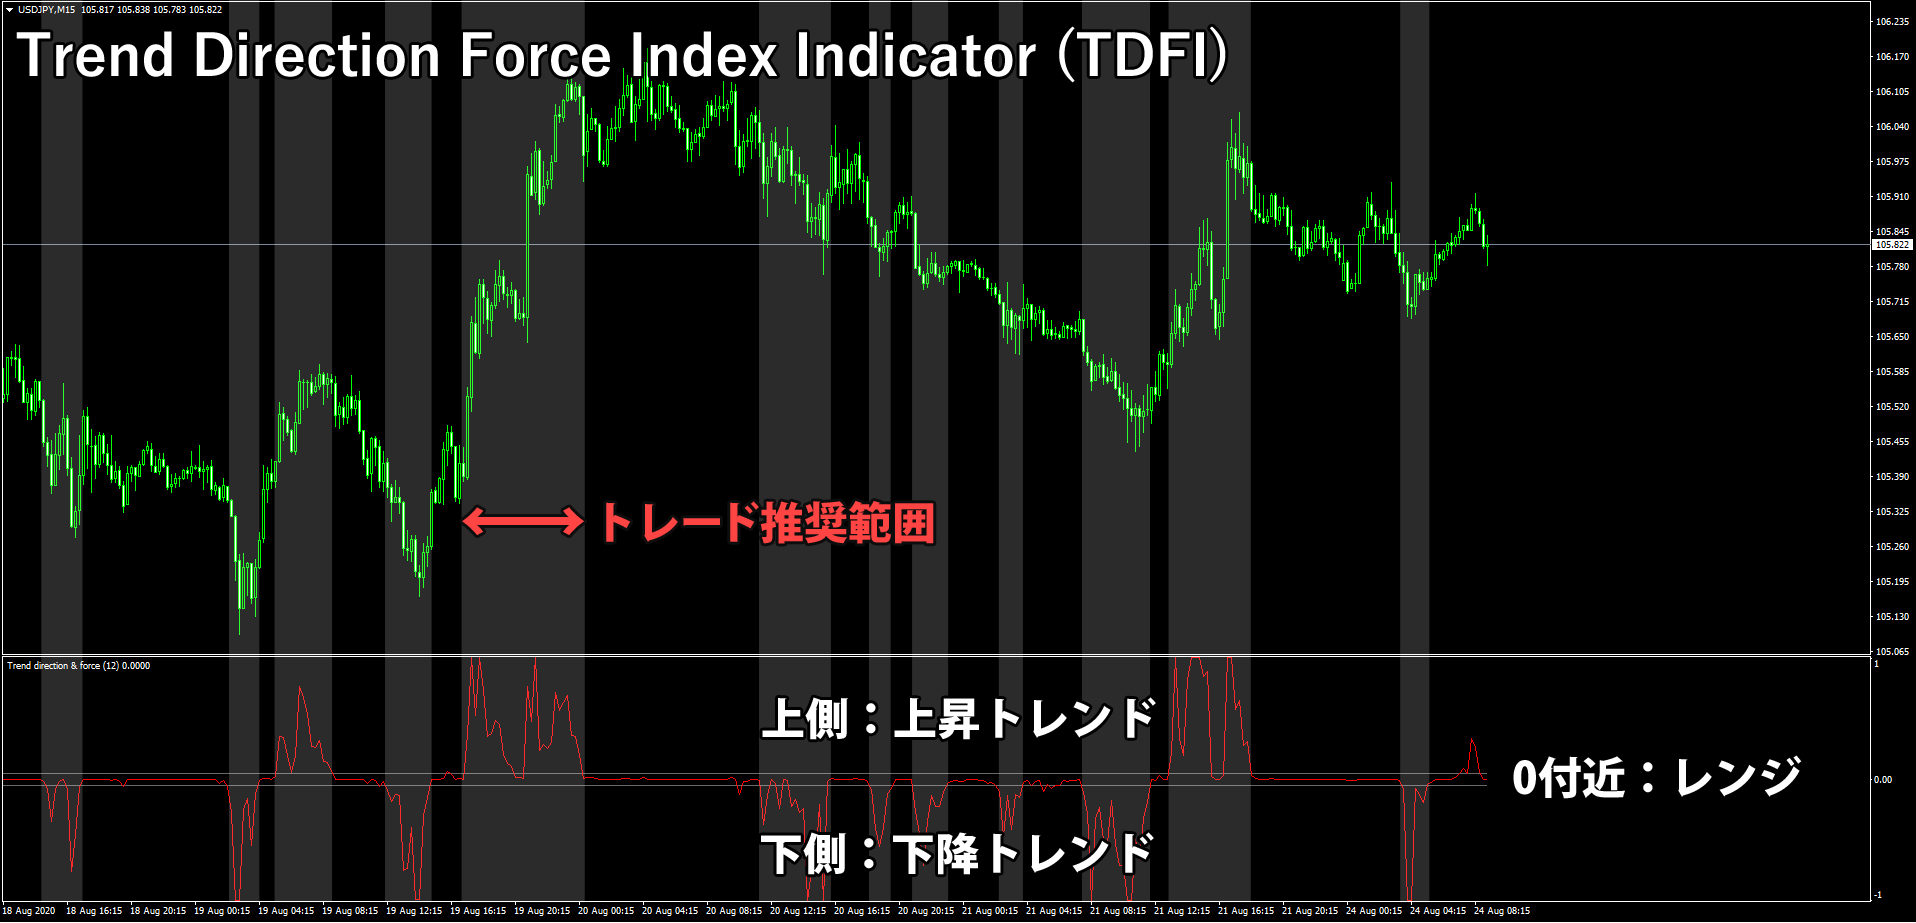 Trend Direction Force Index Indicator (TDFI)を表示したチャート